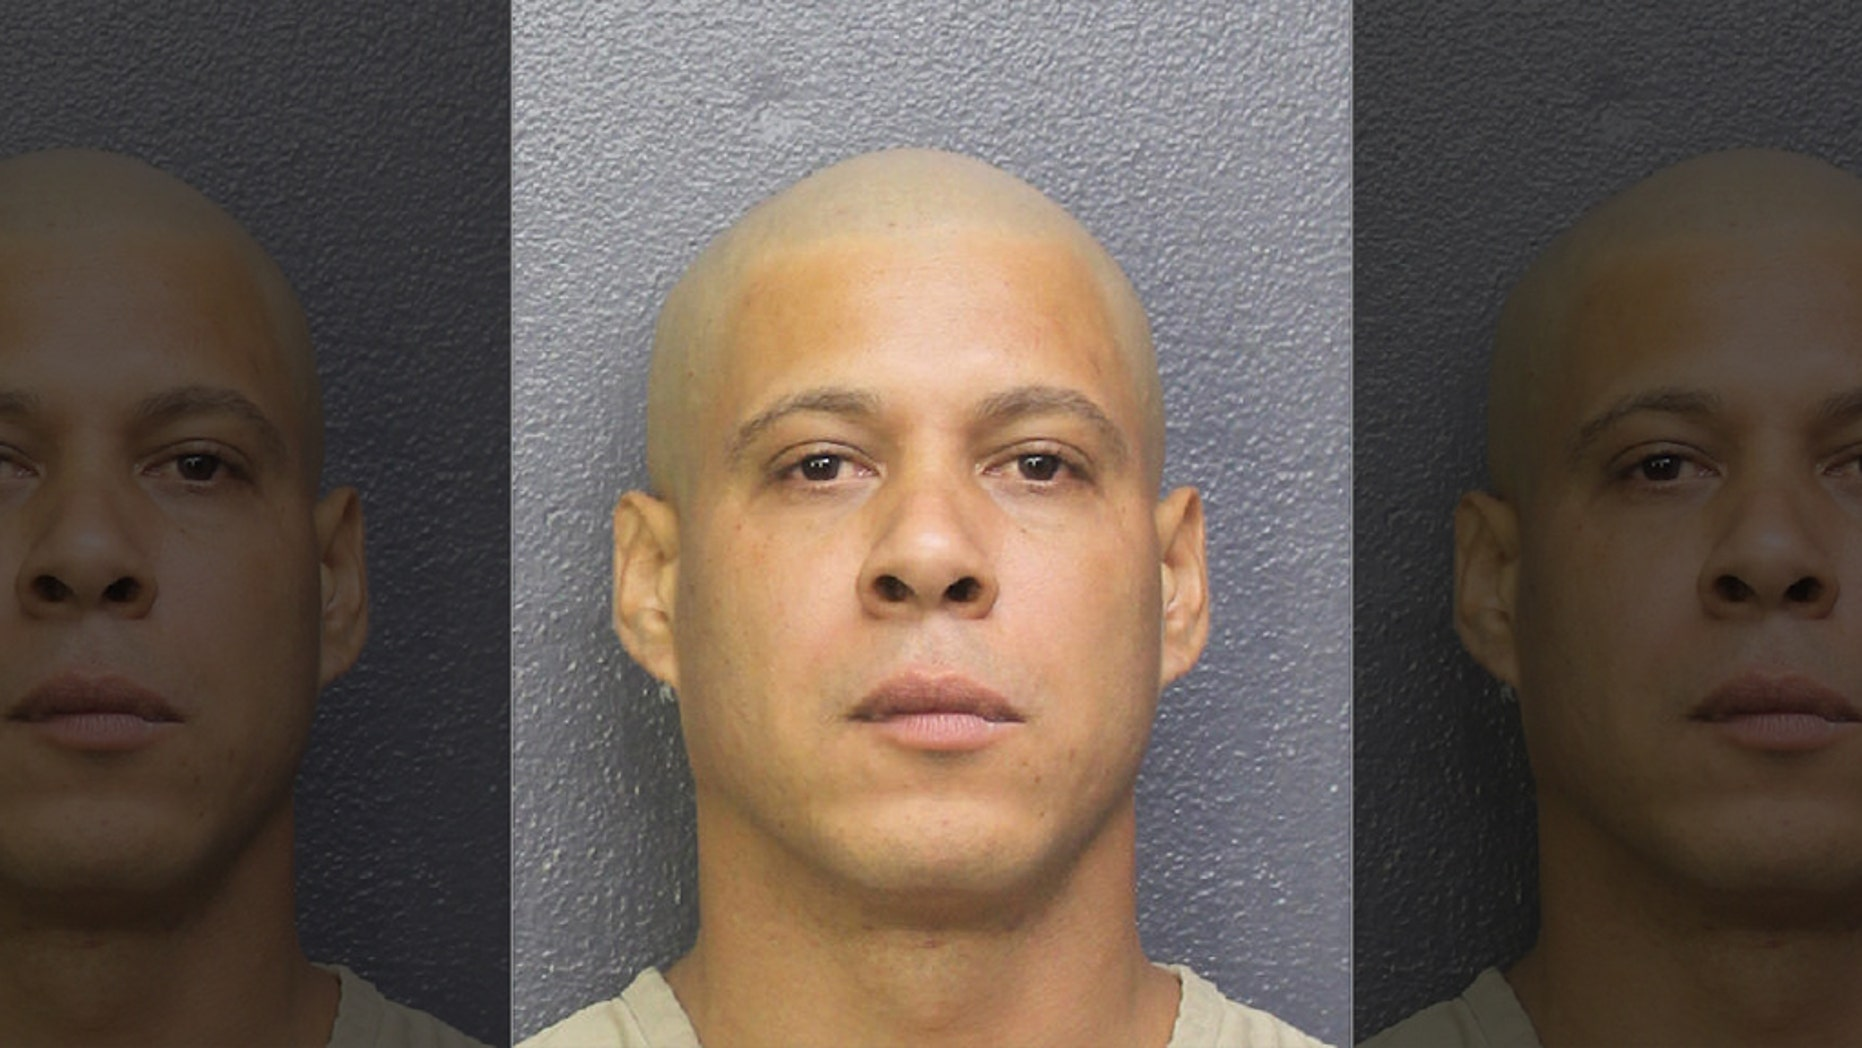 Juan Manuel Gonzalez hurt his pregnant ex-wife and drowned her disabled dog, Pembroke Pines police said.